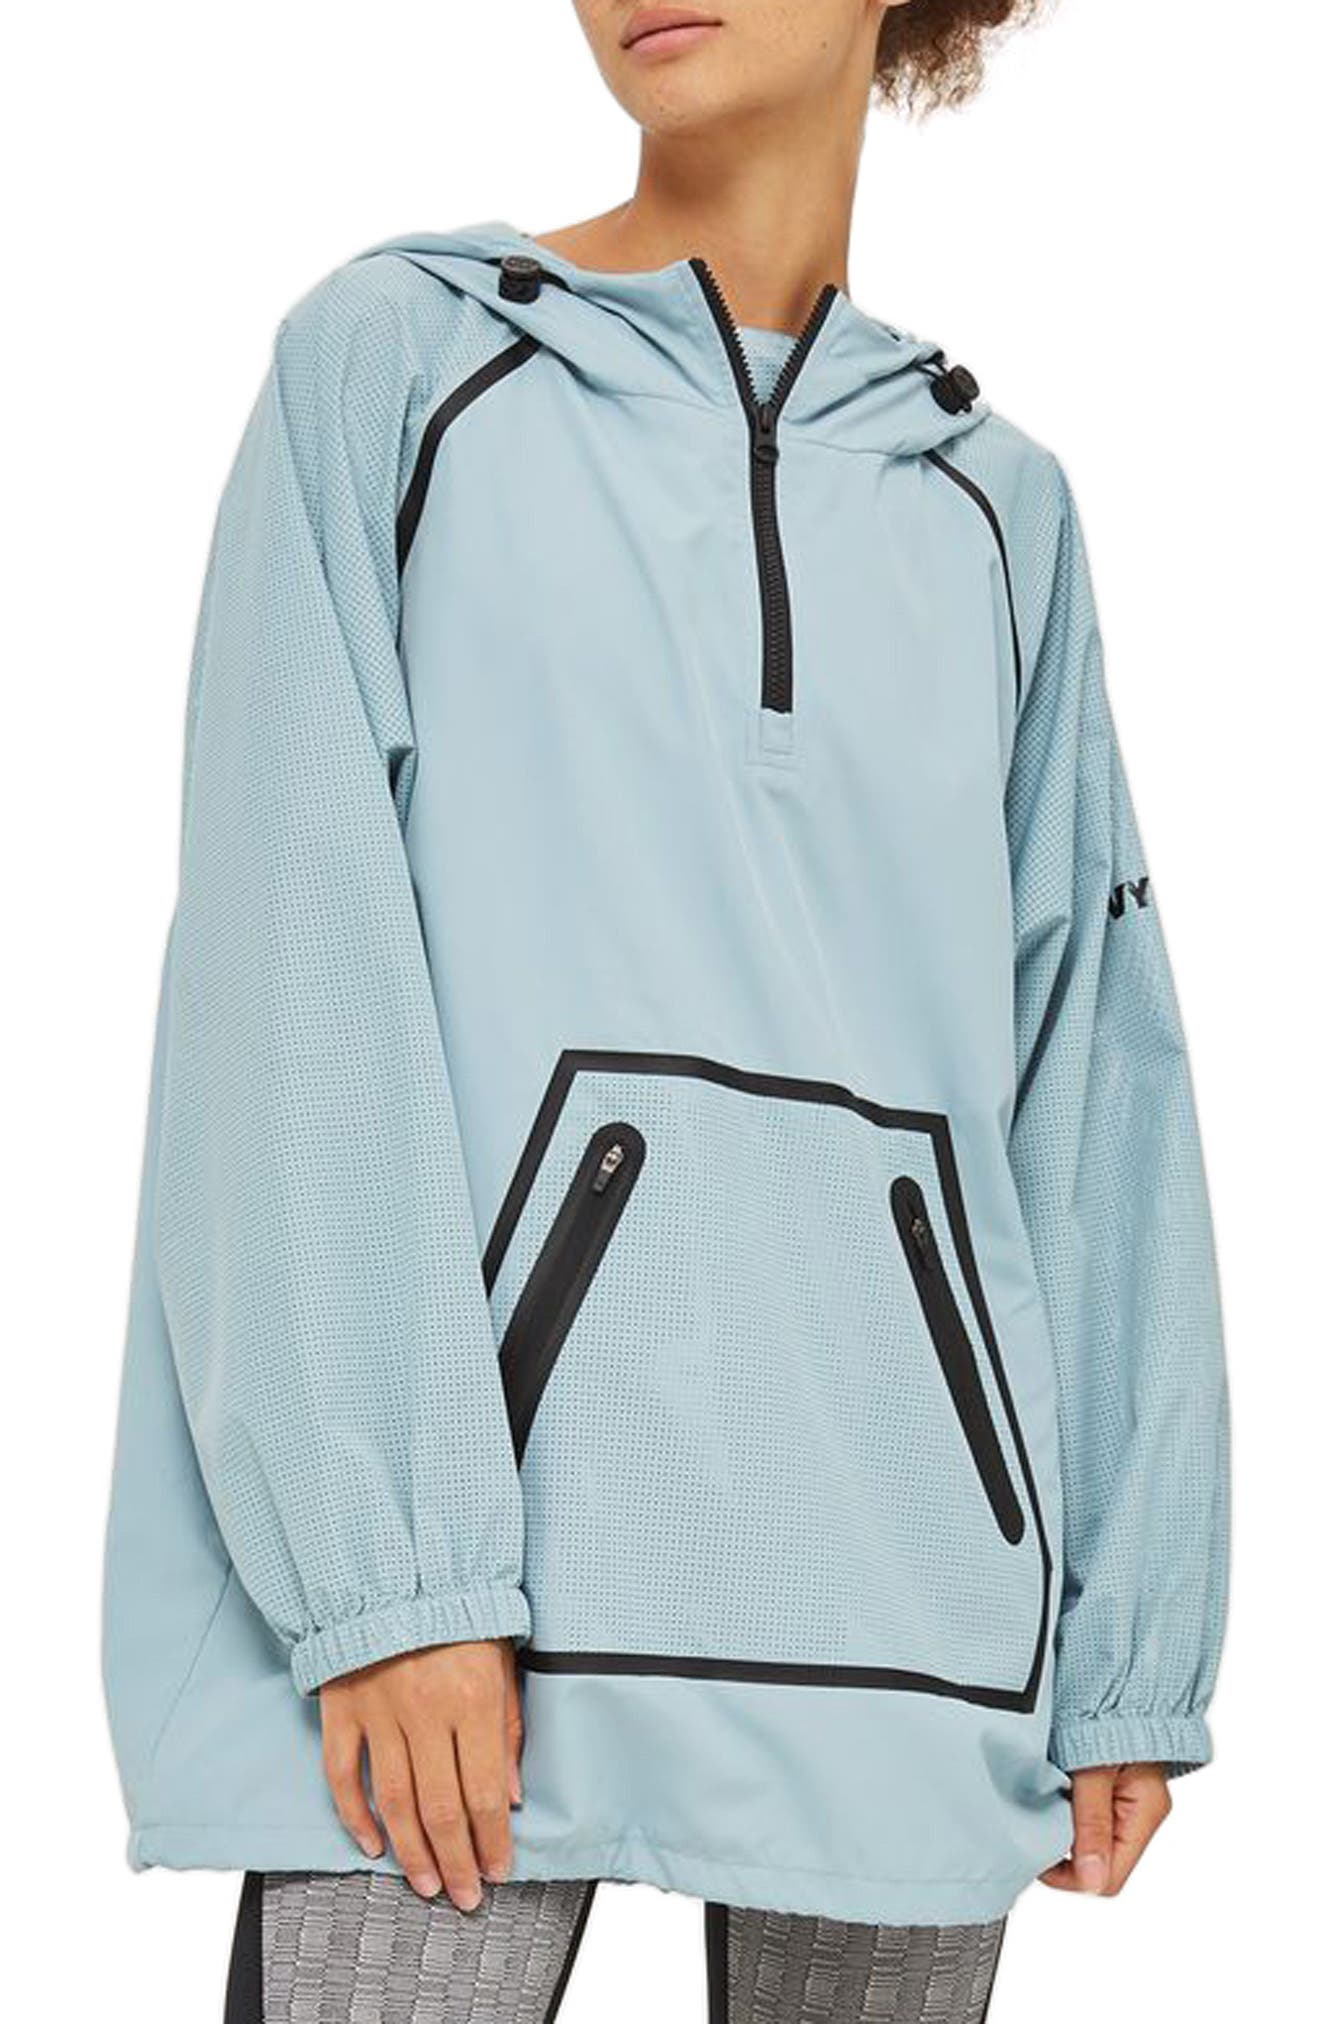 IVY PARK Perforated Pullover Jacket